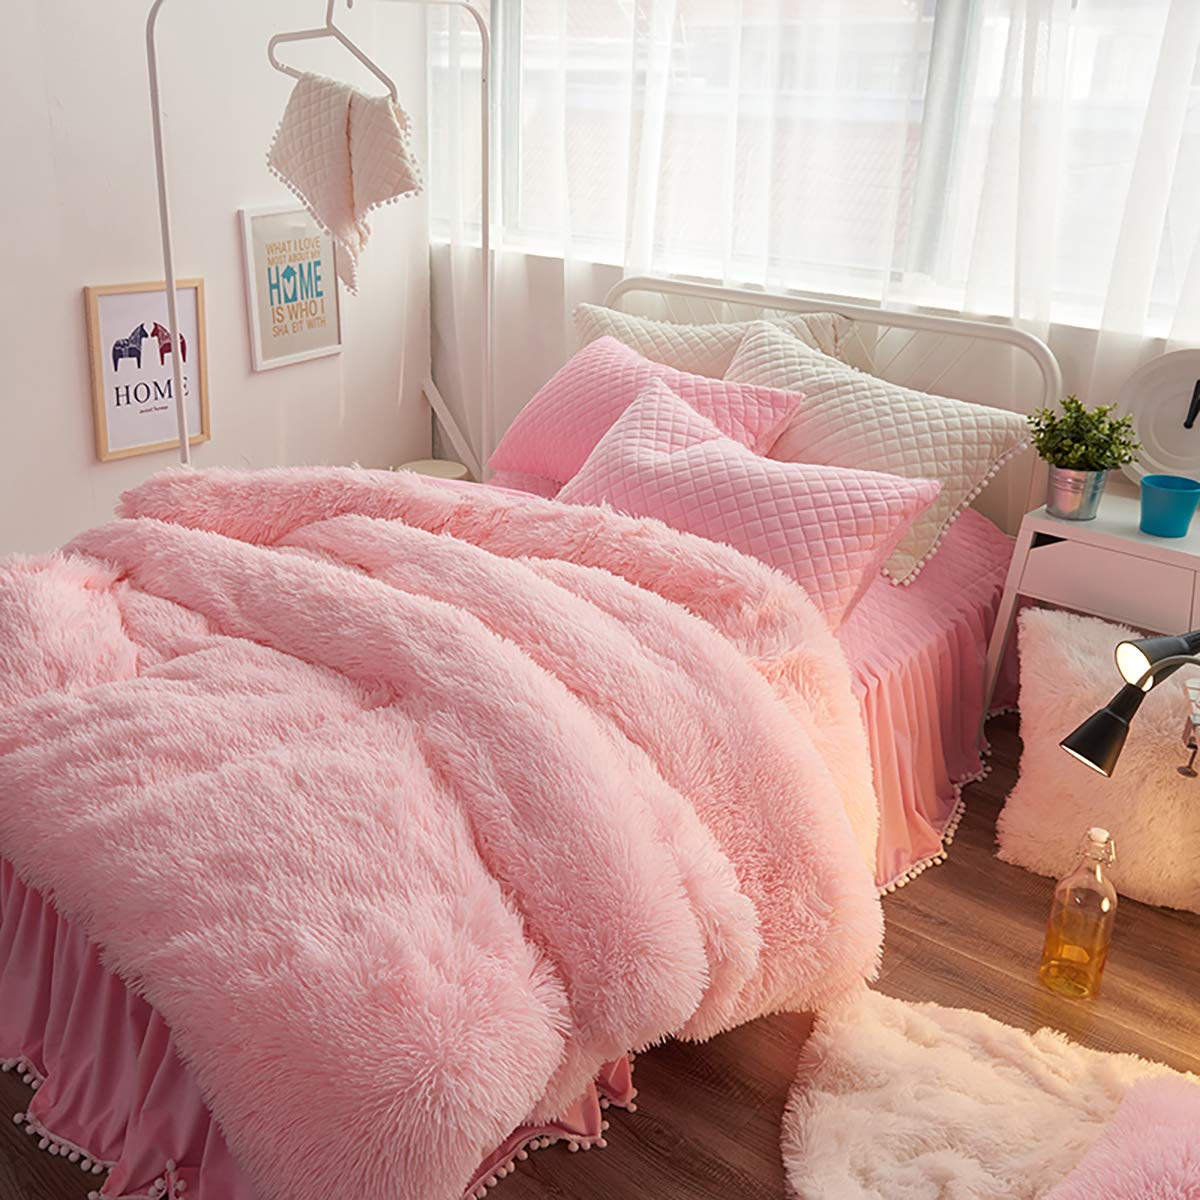 Uozzi Bedding Luxury Plush Shaggy Flannel 3 PC Duvet Cover Set (1 Faux Fur Duvet Cover + 2 Quilted Pillow Shams) Solid,No Inside Filler,Zipper Closure Warm and Soft for Winter (Pink,King)